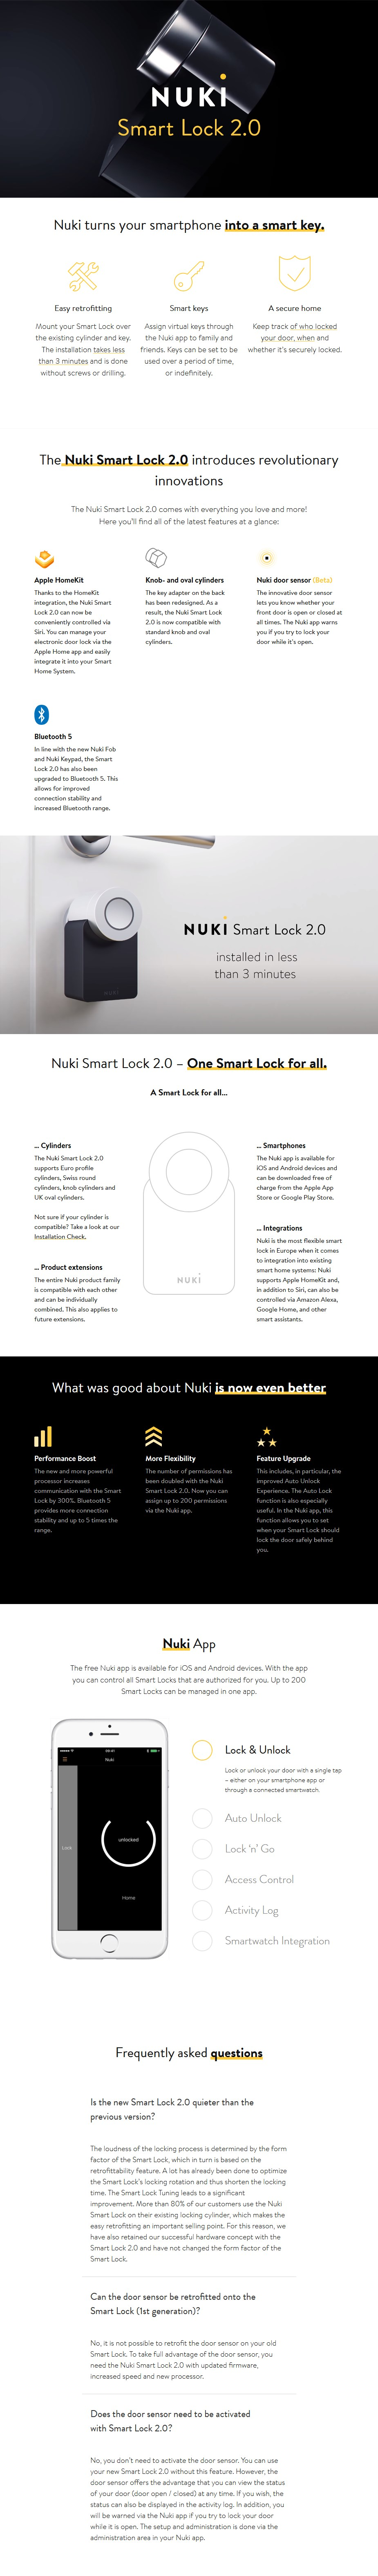 Nuki Smart Lock 2.0 - Overview 1